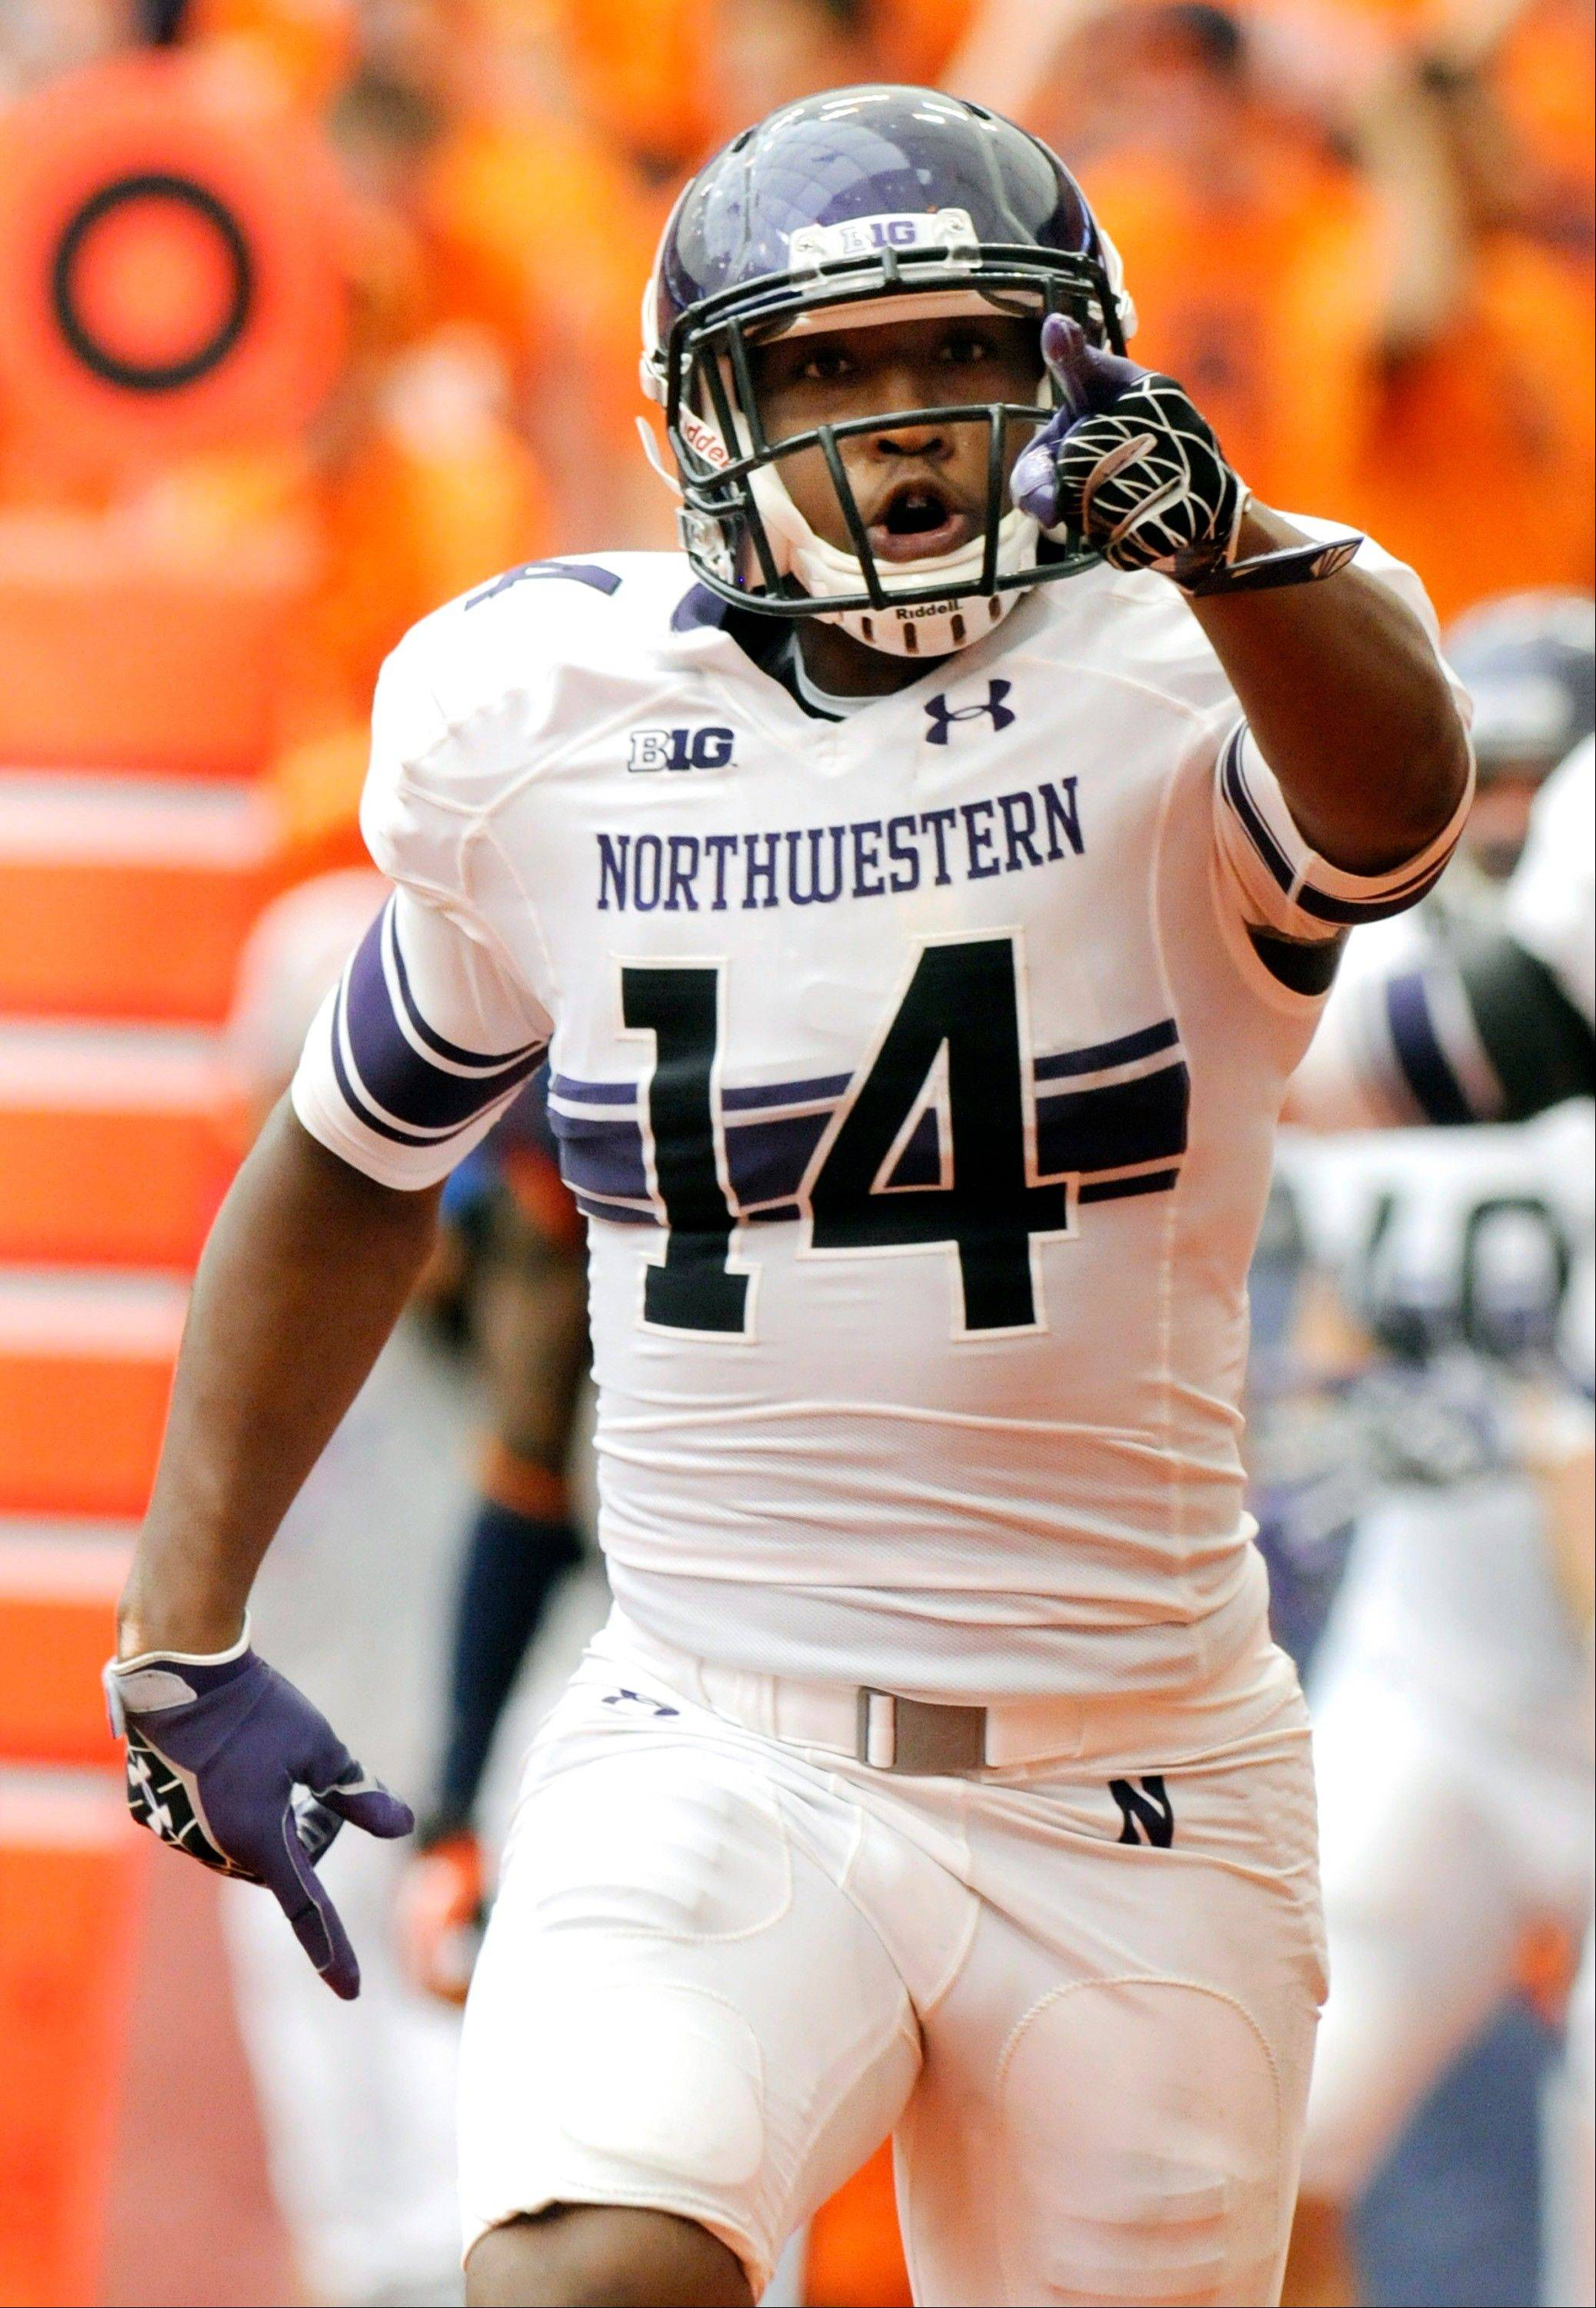 Northwestern's Christian Jones reacts after scoring against Syracuse during the second quarter of an NCAA college football game in Syracuse, N.Y., Saturday, Sept. 1, 2012. (AP Photo/Hans Pennink)